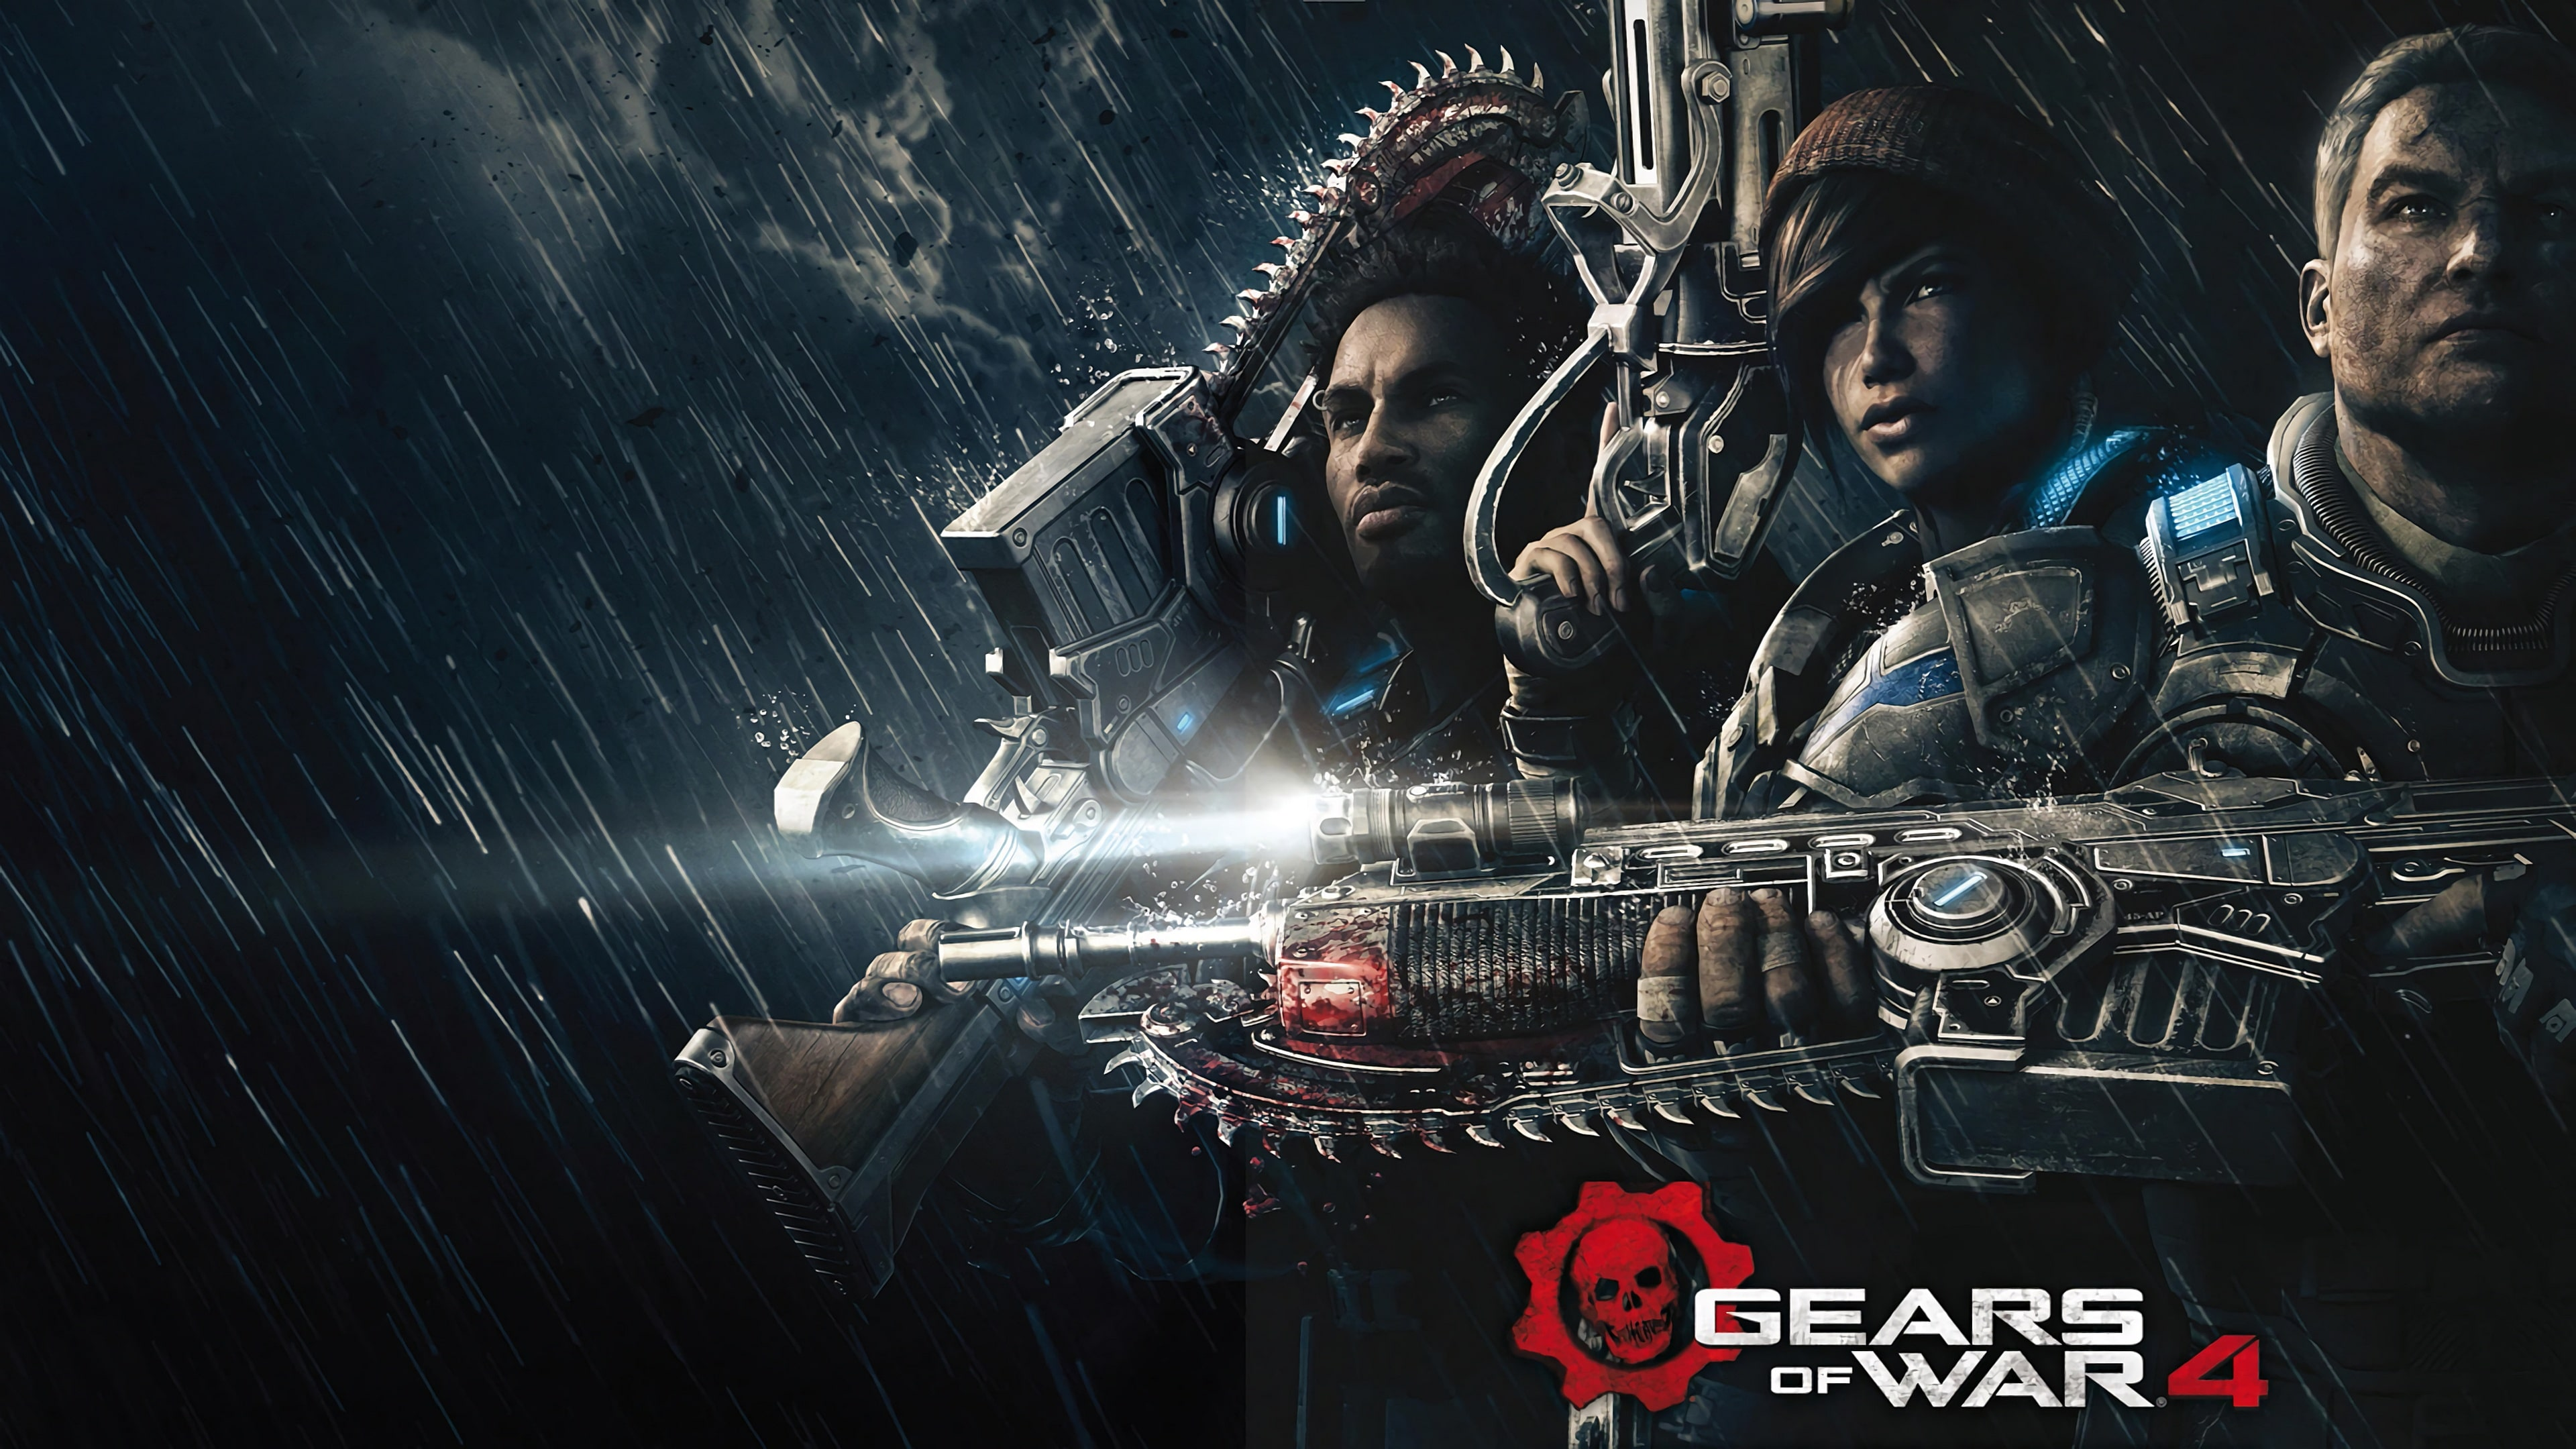 Gears of War 4 widescreen wallpapers